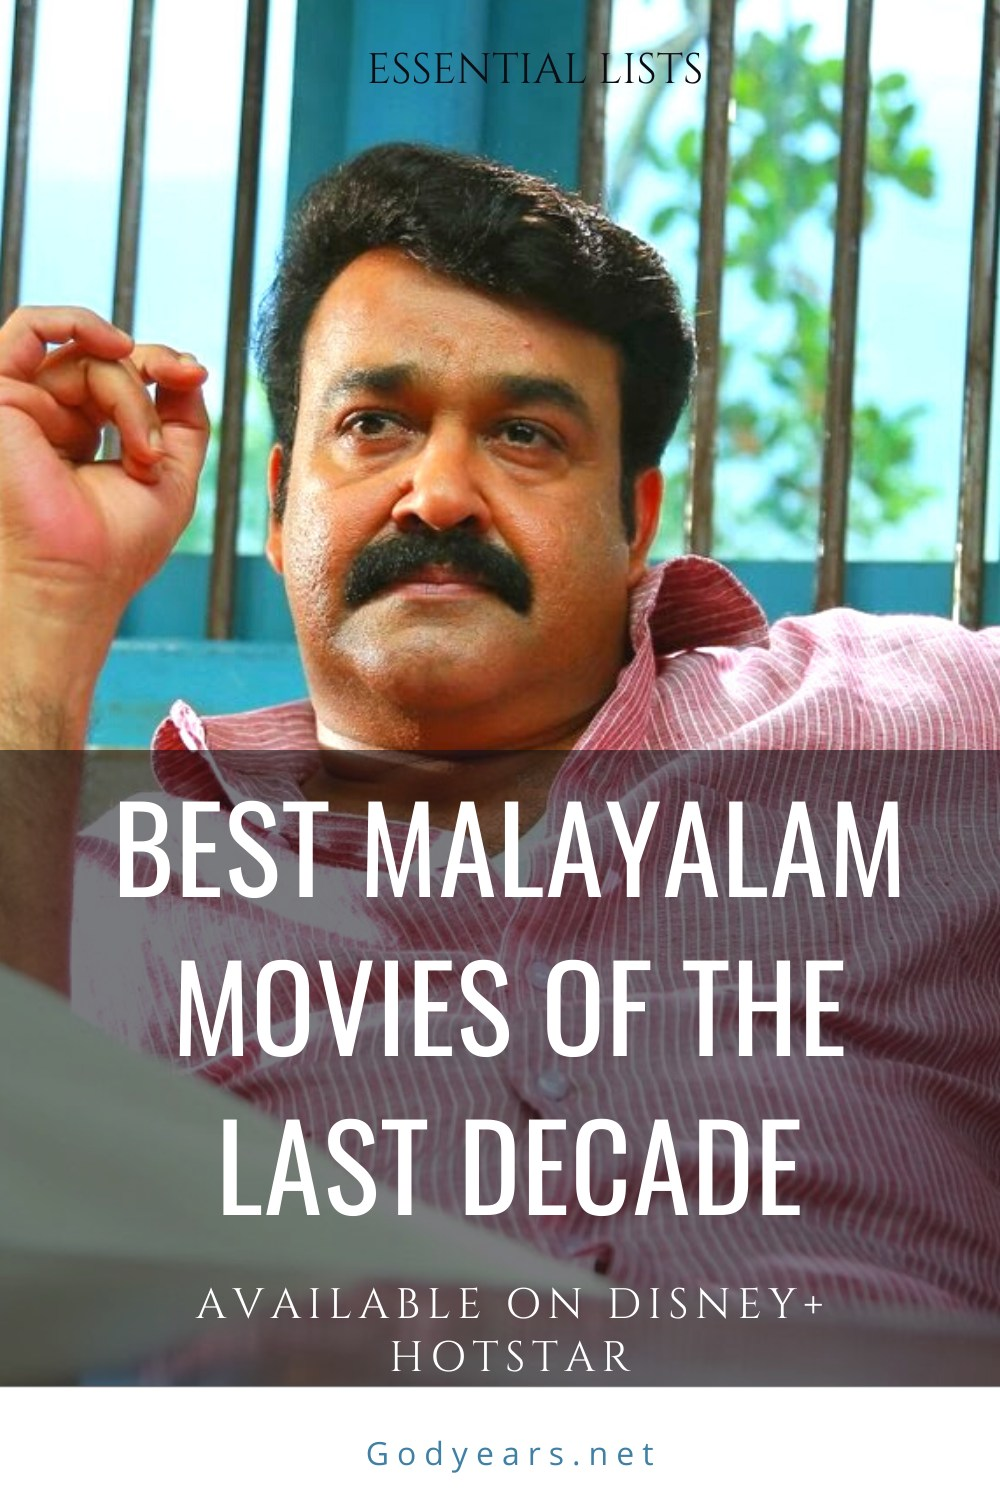 List of best malayalam movies of the last decade available on Hotstar Disney